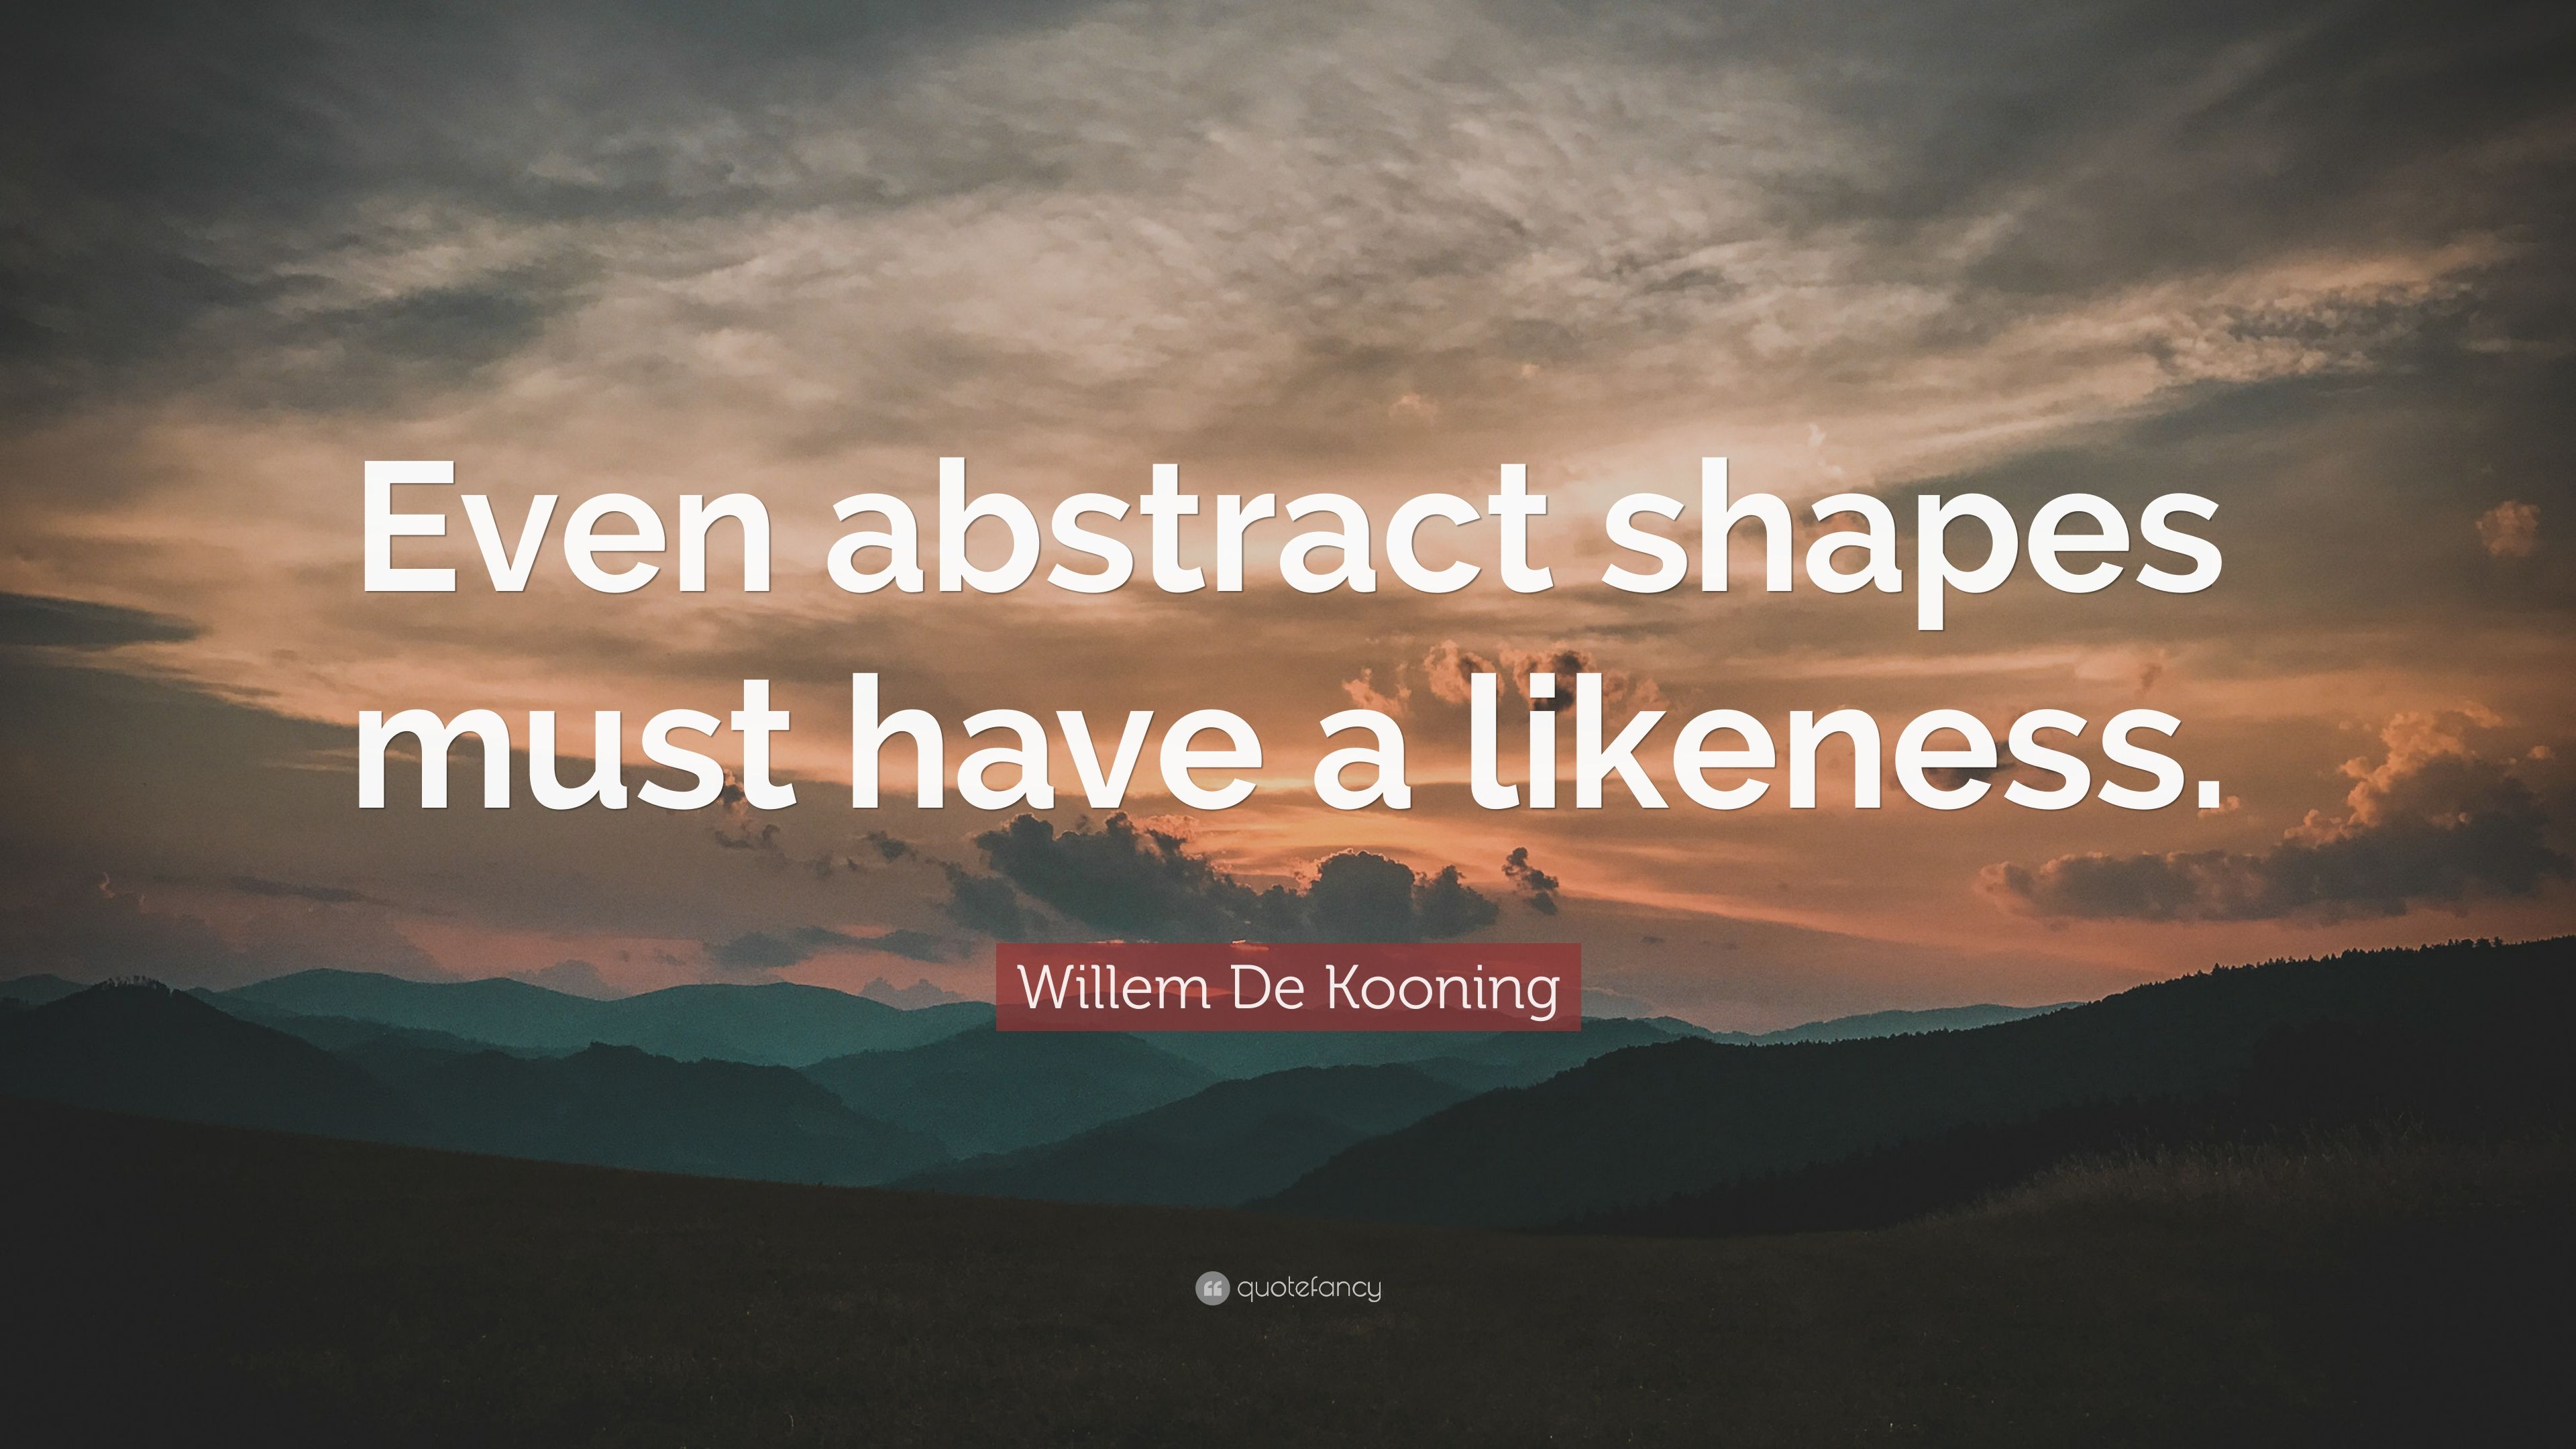 Willem De Kooning Quote Even Abstract Shapes Must Have A